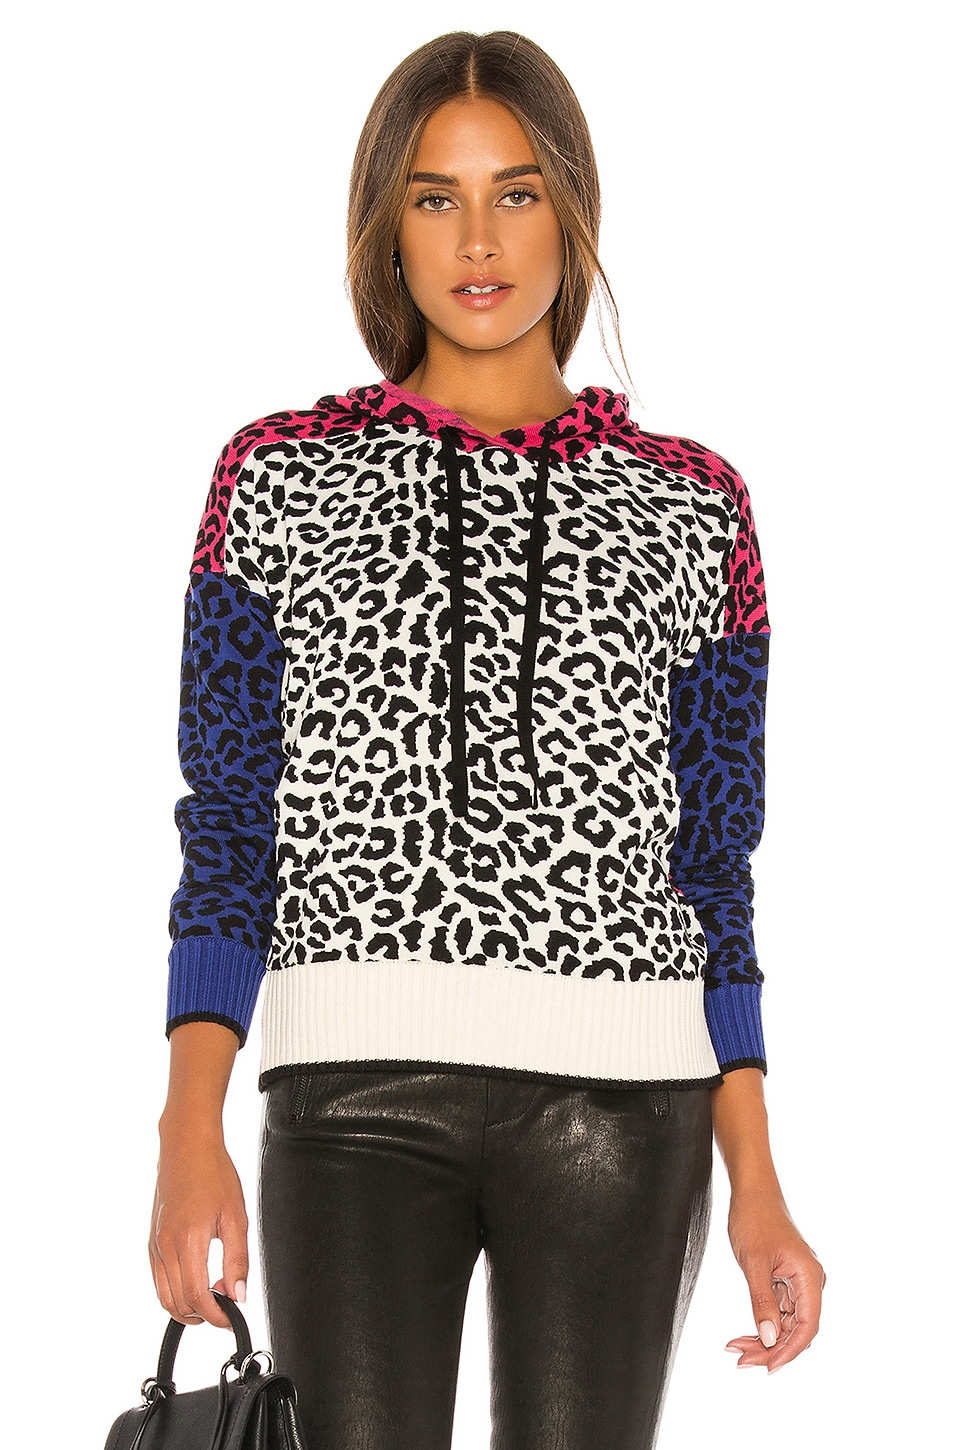 Central Park West Miami Hoodie in Multi Leopard